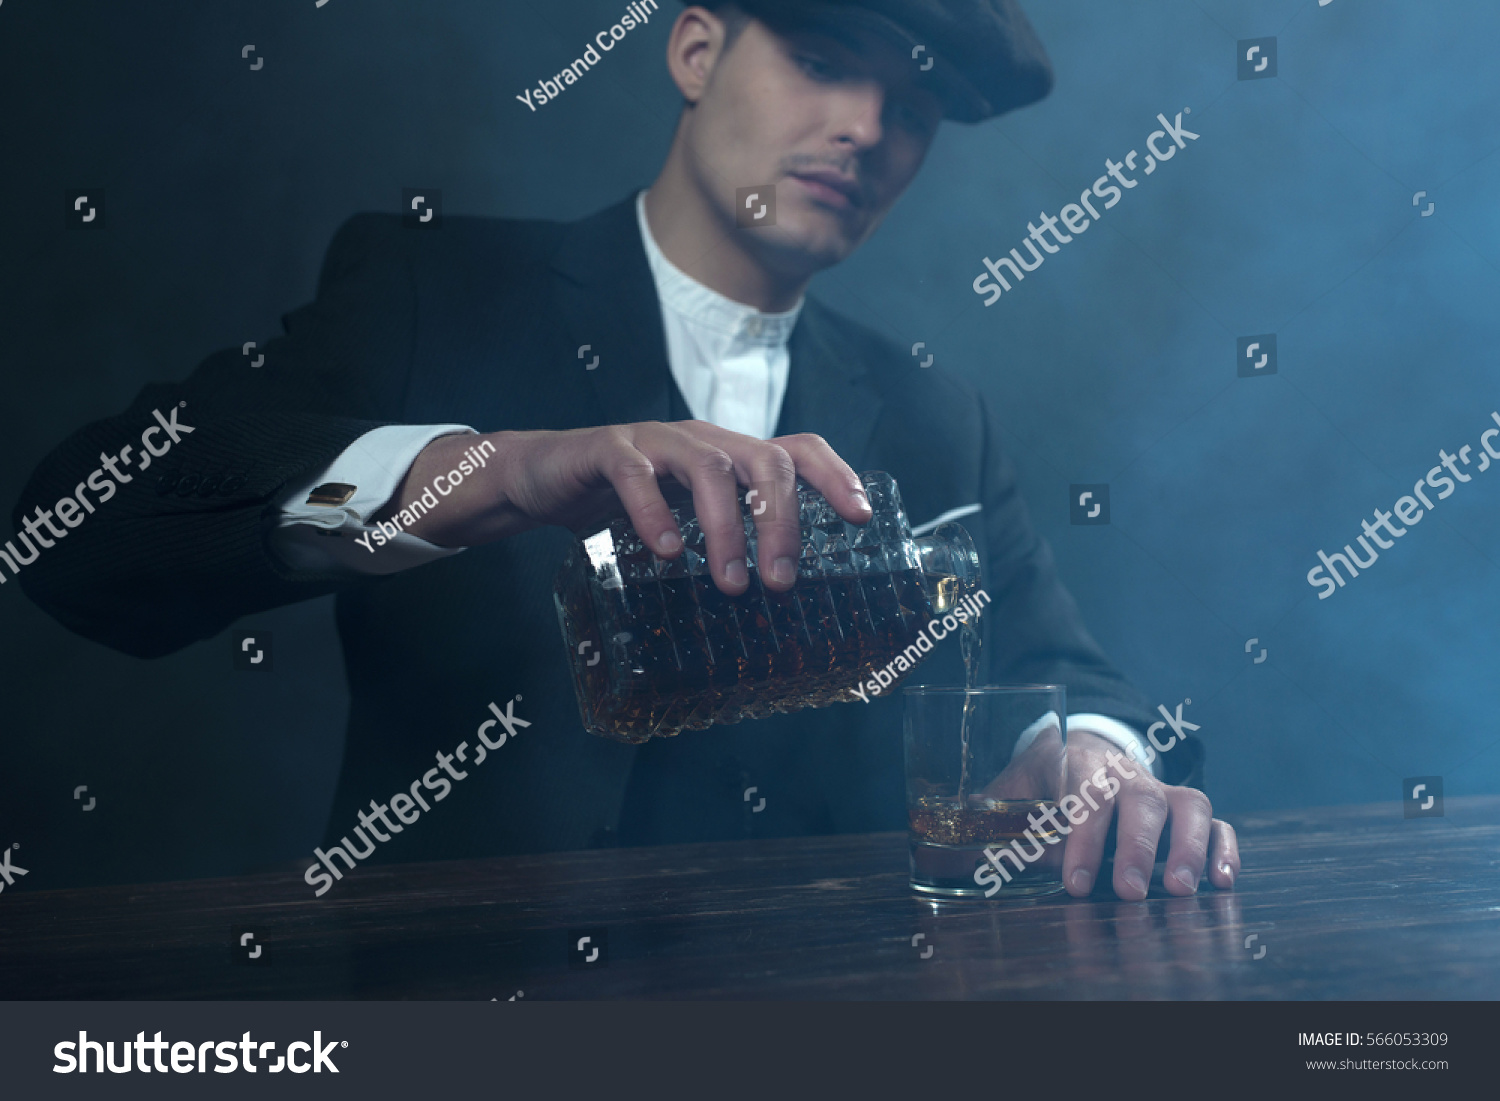 Retro 1920s english gangster with flat cap pouring whiskey. Peaky blinders  style. 10ed7cdd361